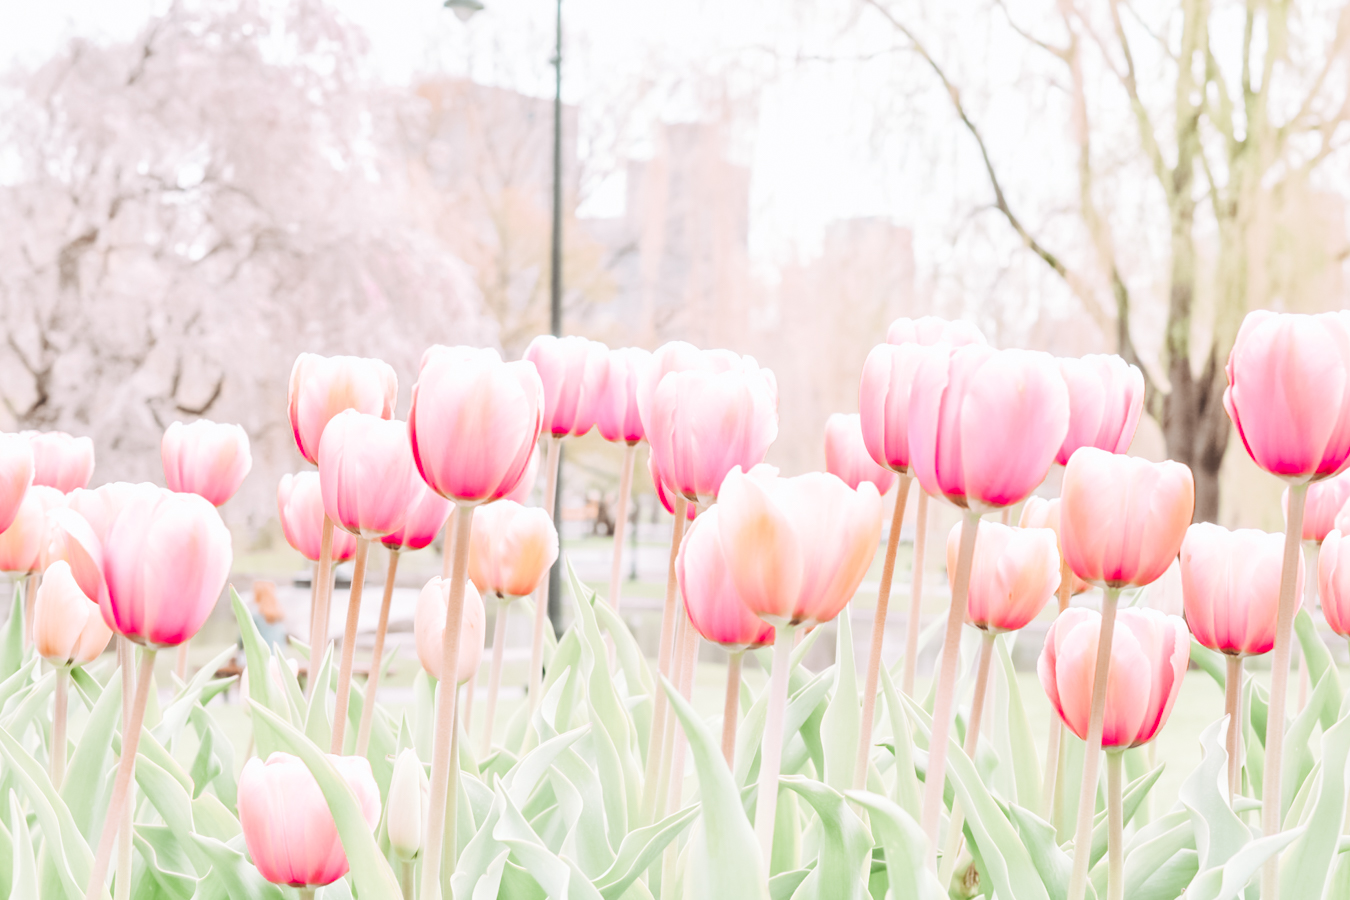 Instagrammable tulips at the Boston Public Garden